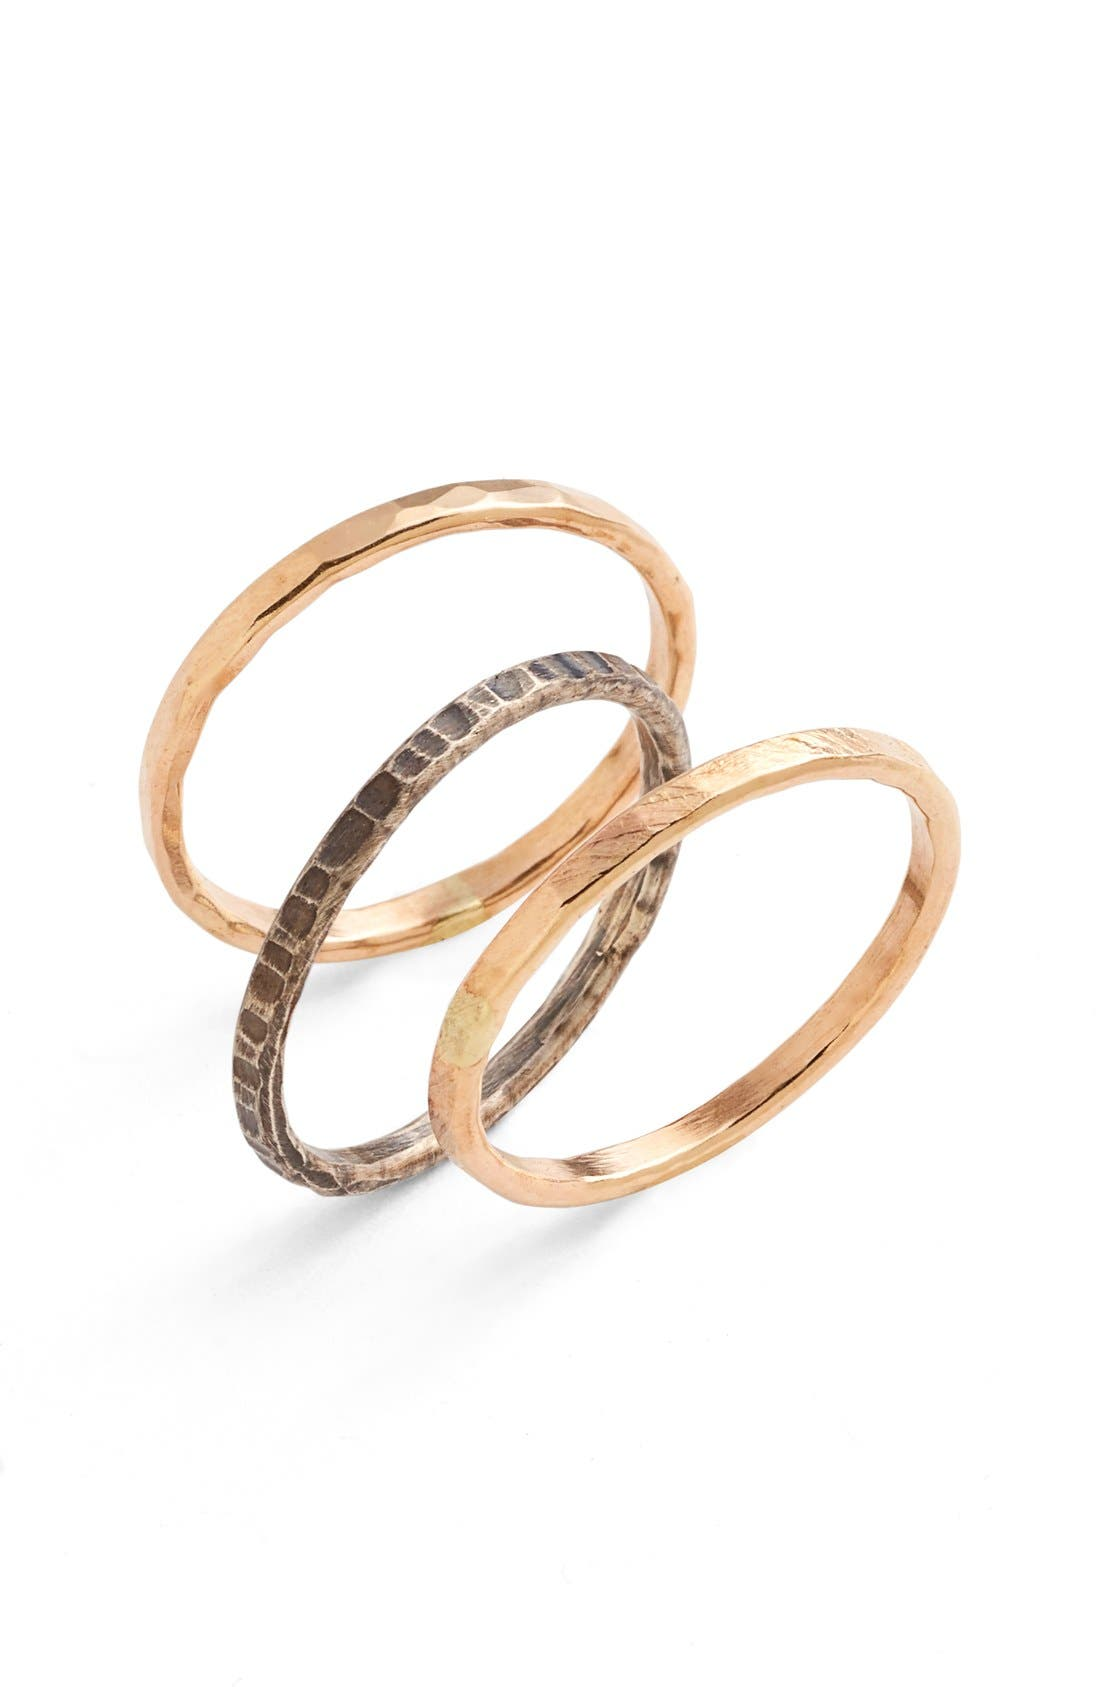 Ija Stackable Hammered Rings,                         Main,                         color, Mixed Metals